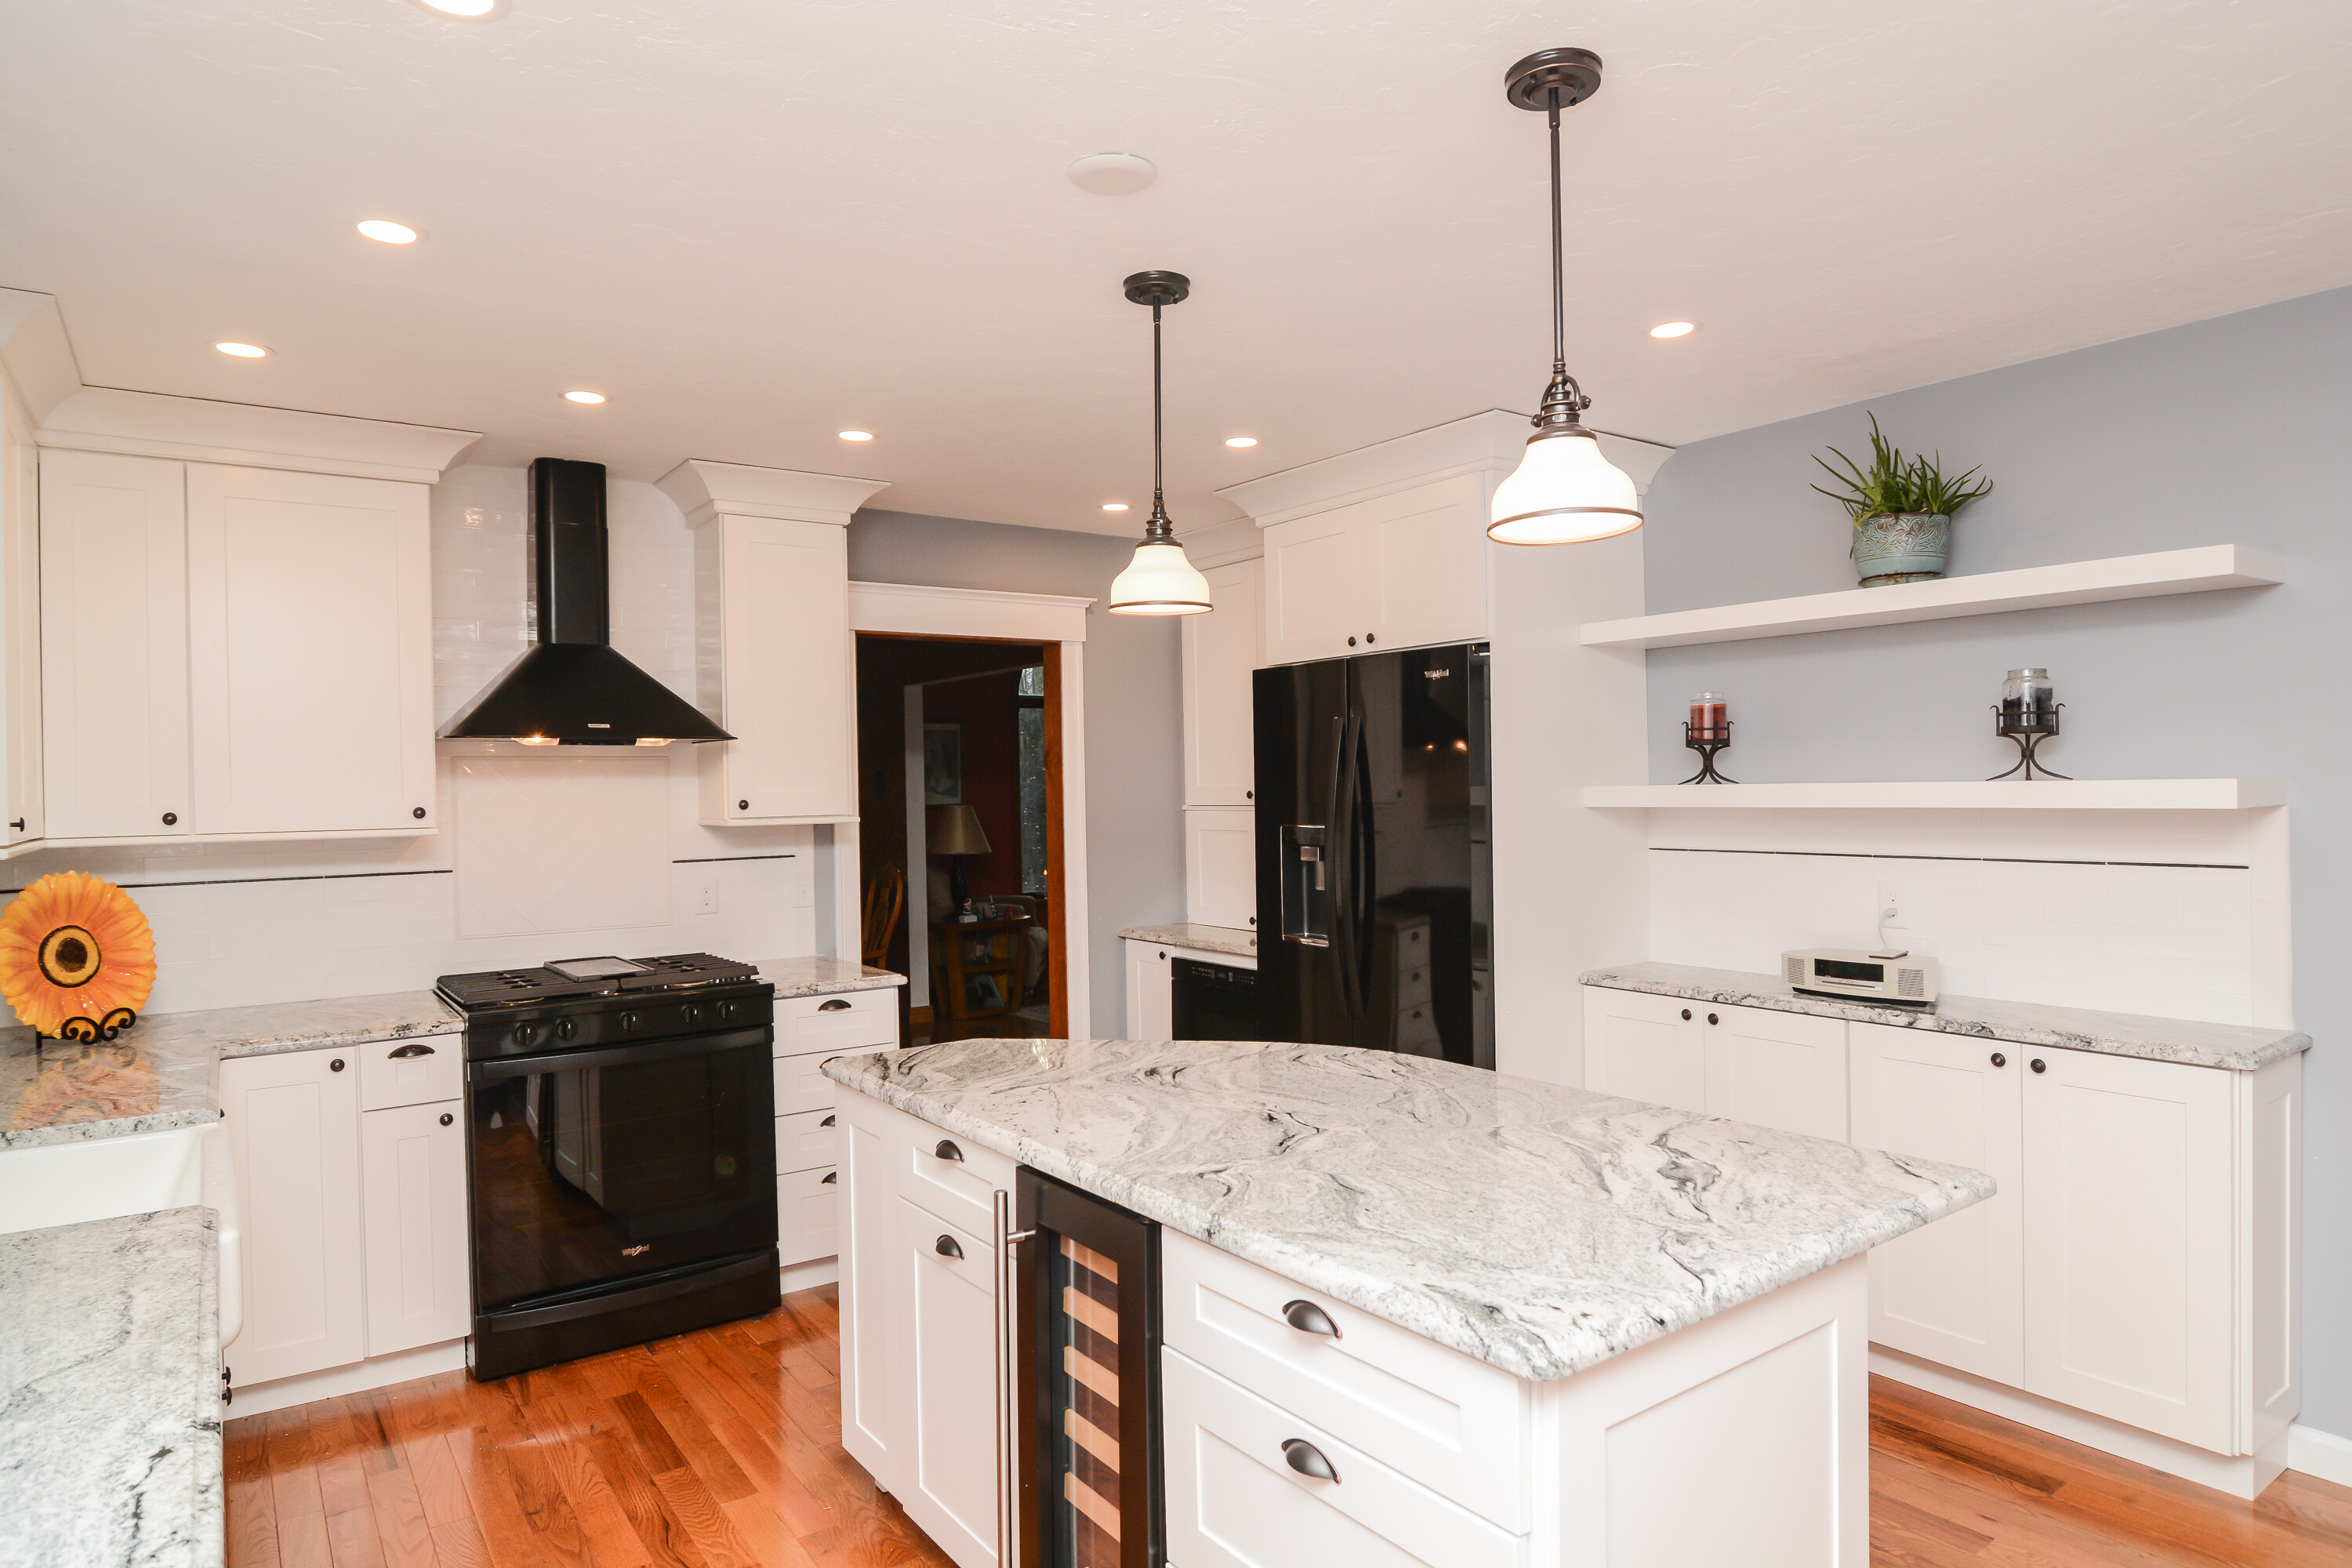 Marlborough Massachusetts Kitchen Remodel Canty Brothers Construction Design-Build top rated